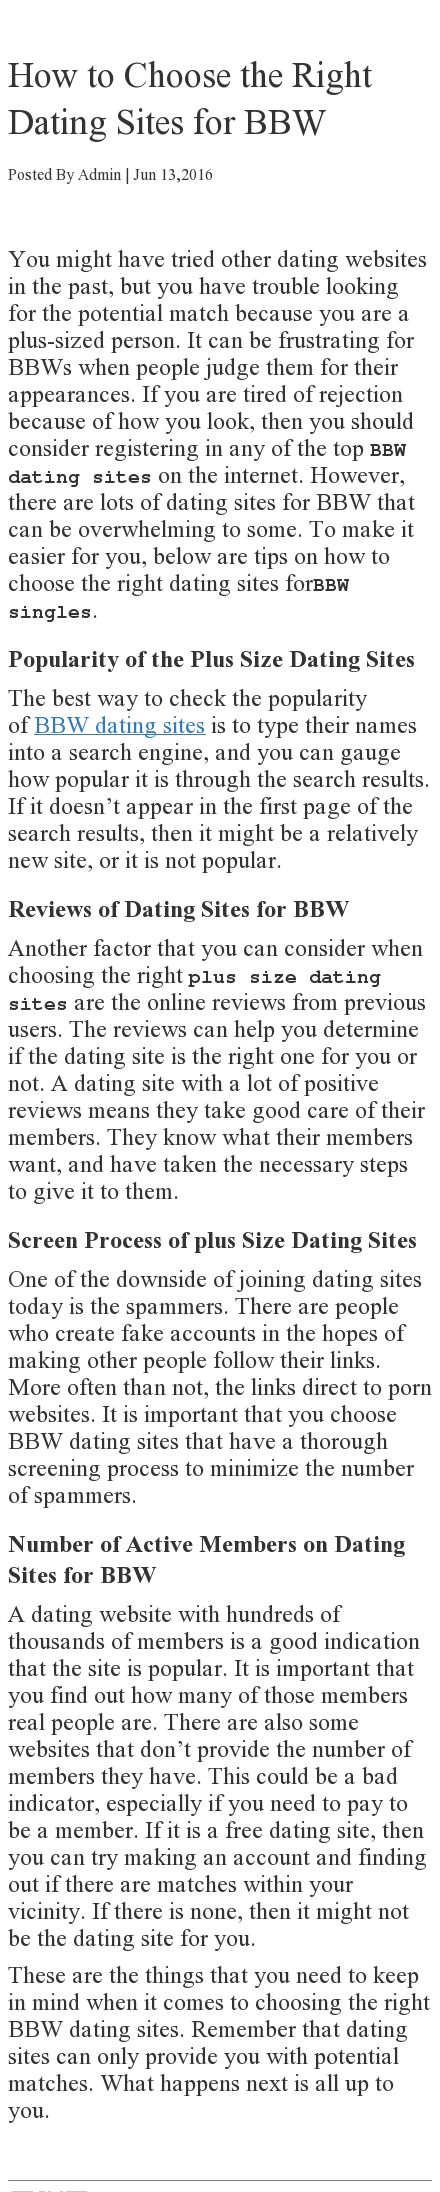 Best websites for plus size dating advice